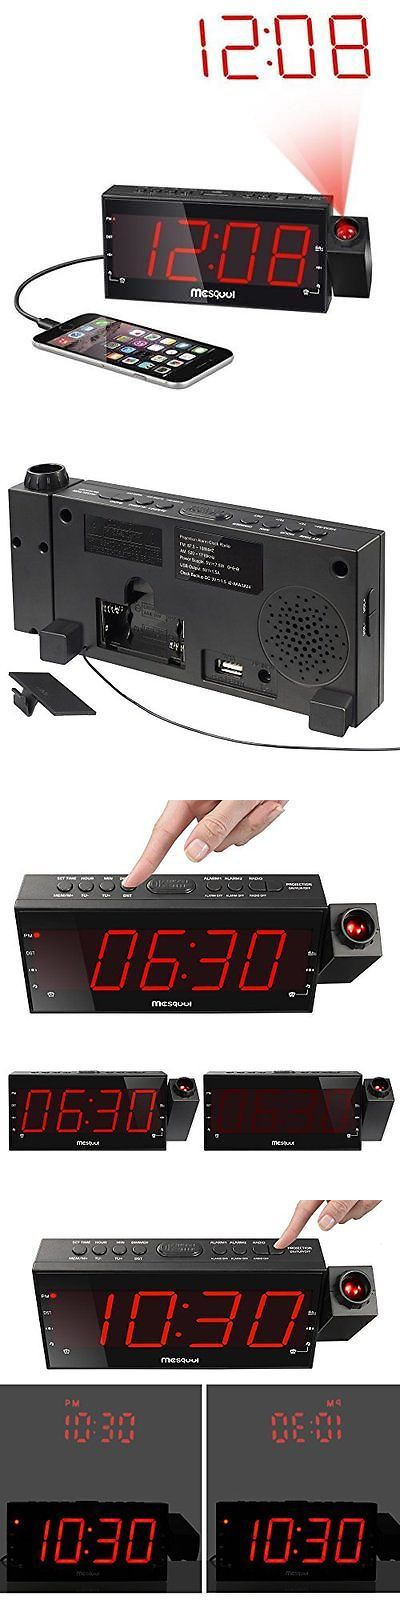 Digital Clocks and Clock Radios: Mesqool Am Fm Digital Dimmable Projection Alarm Clock Radio With 1.8 Led -> BUY IT NOW ONLY: $32.19 on eBay!